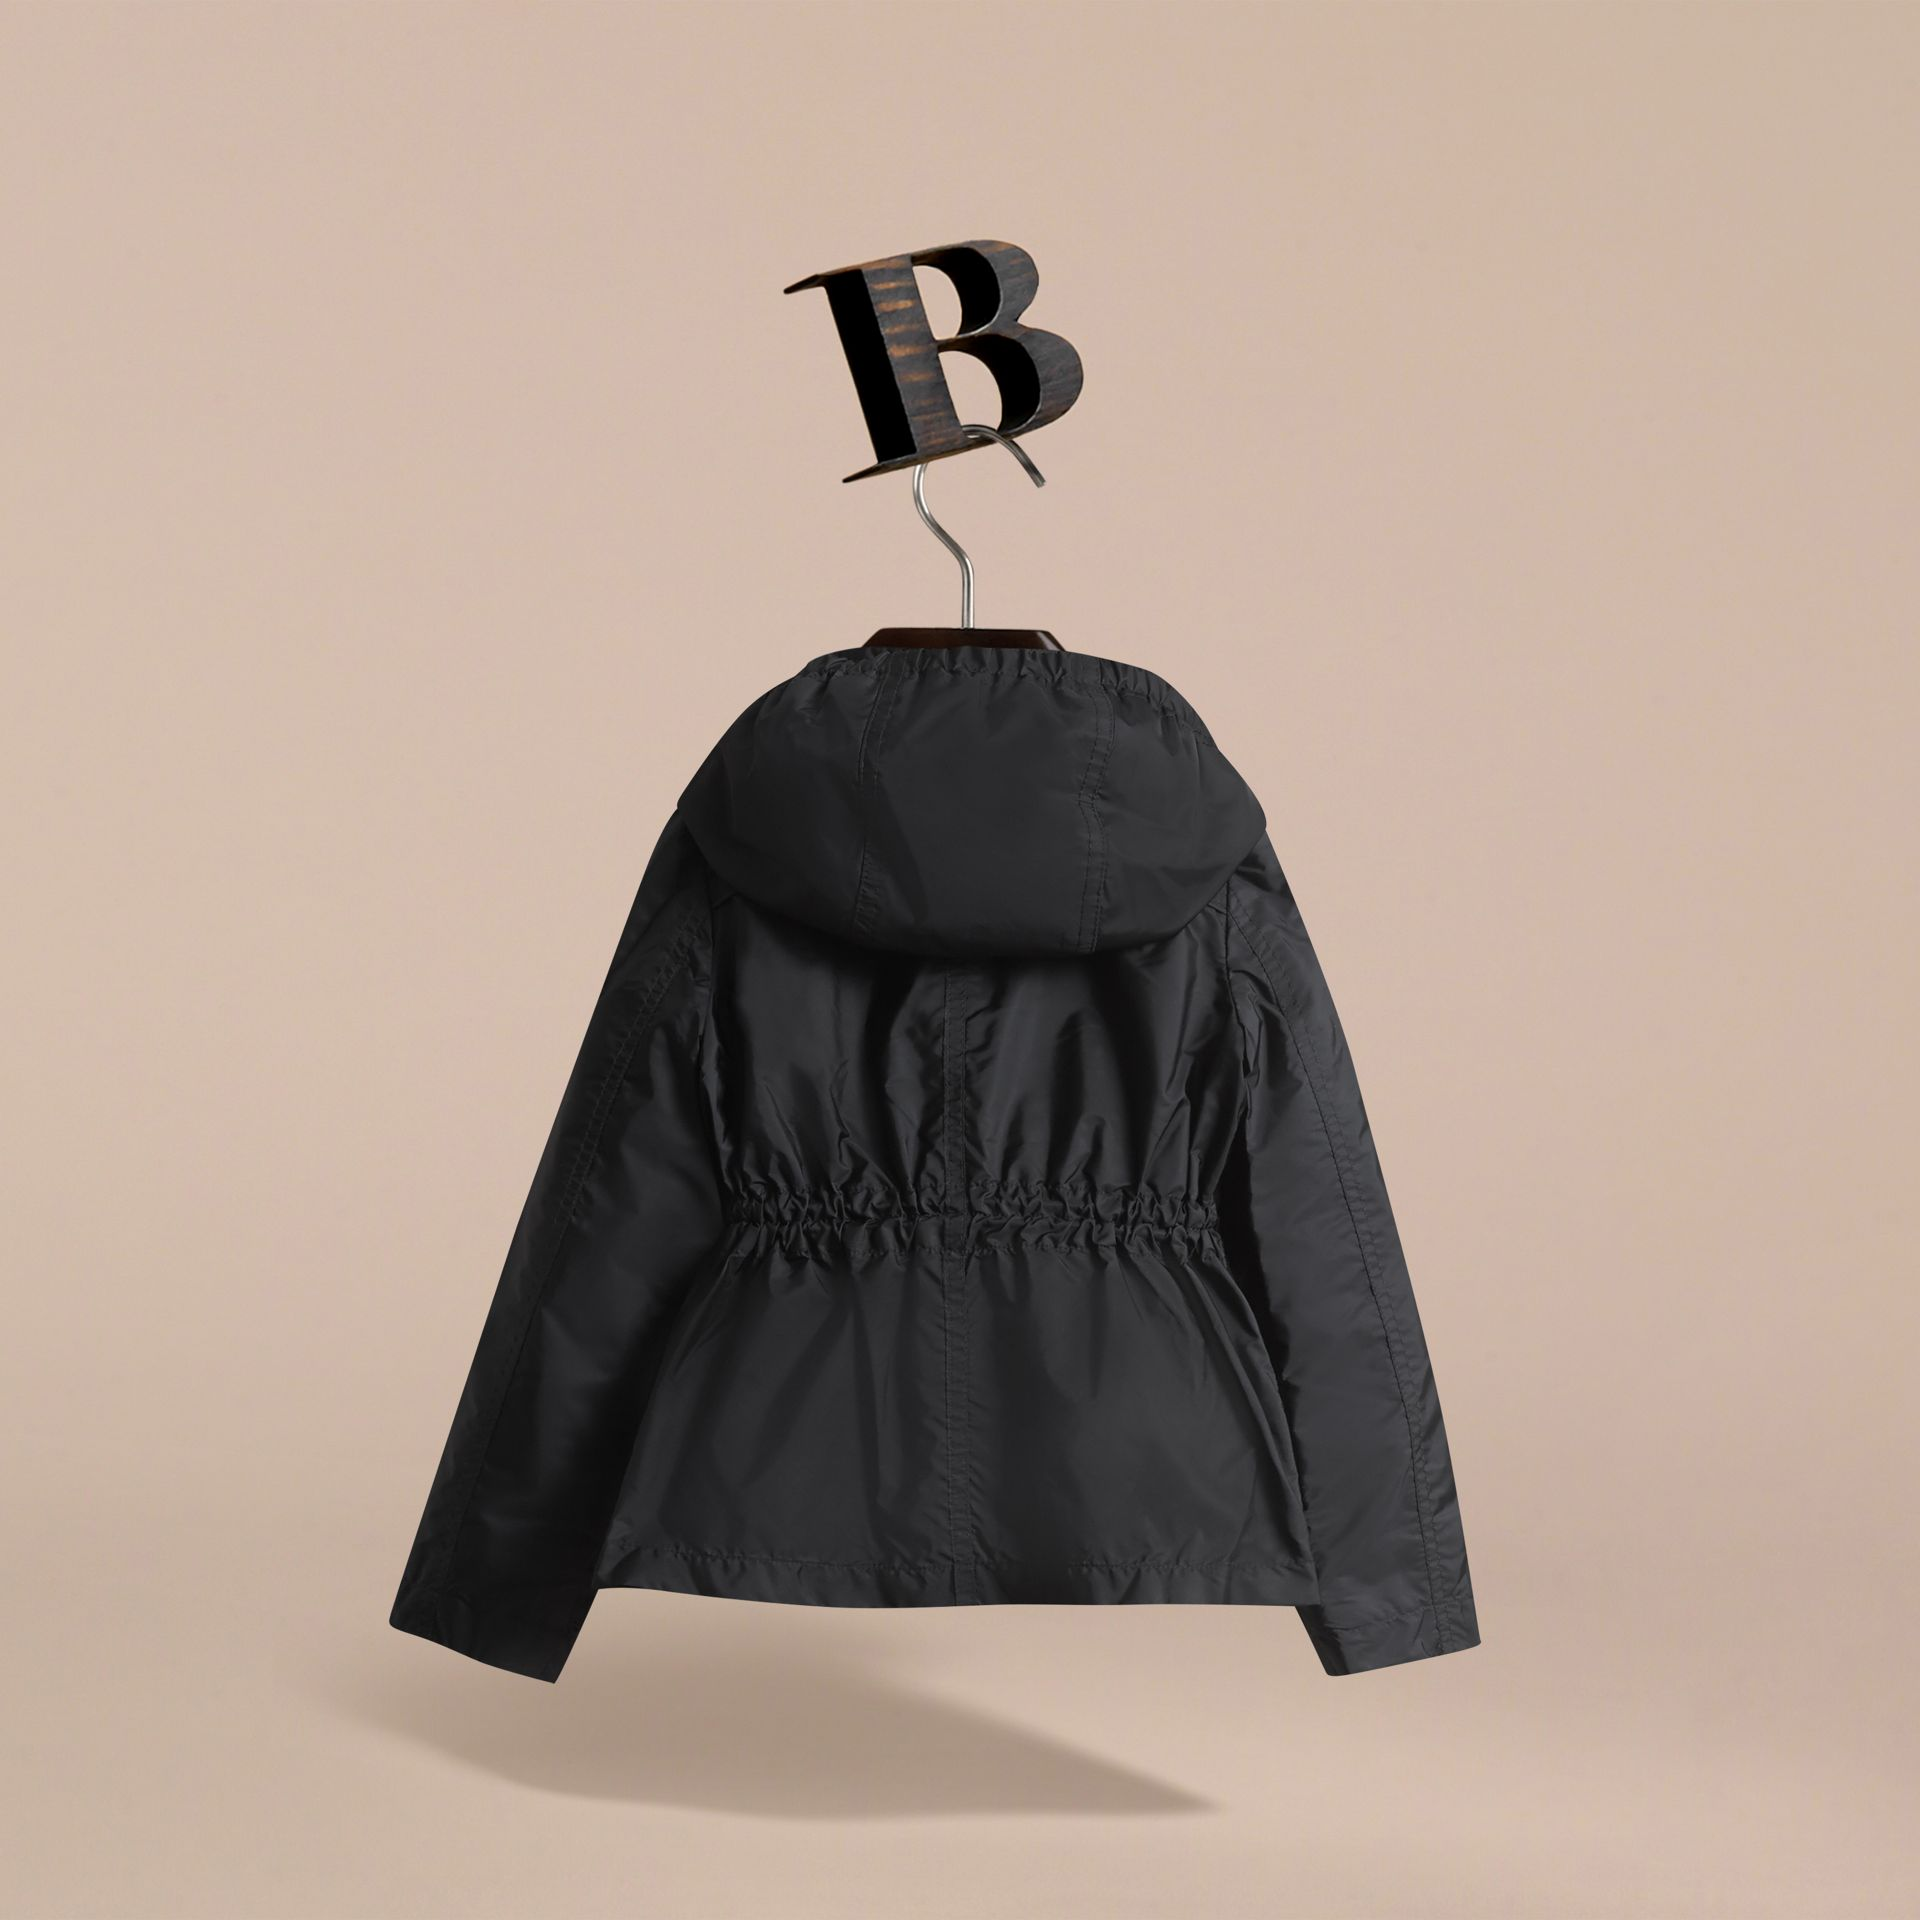 Veste à capuche repliable en tissu technique - Fille | Burberry - photo de la galerie 4